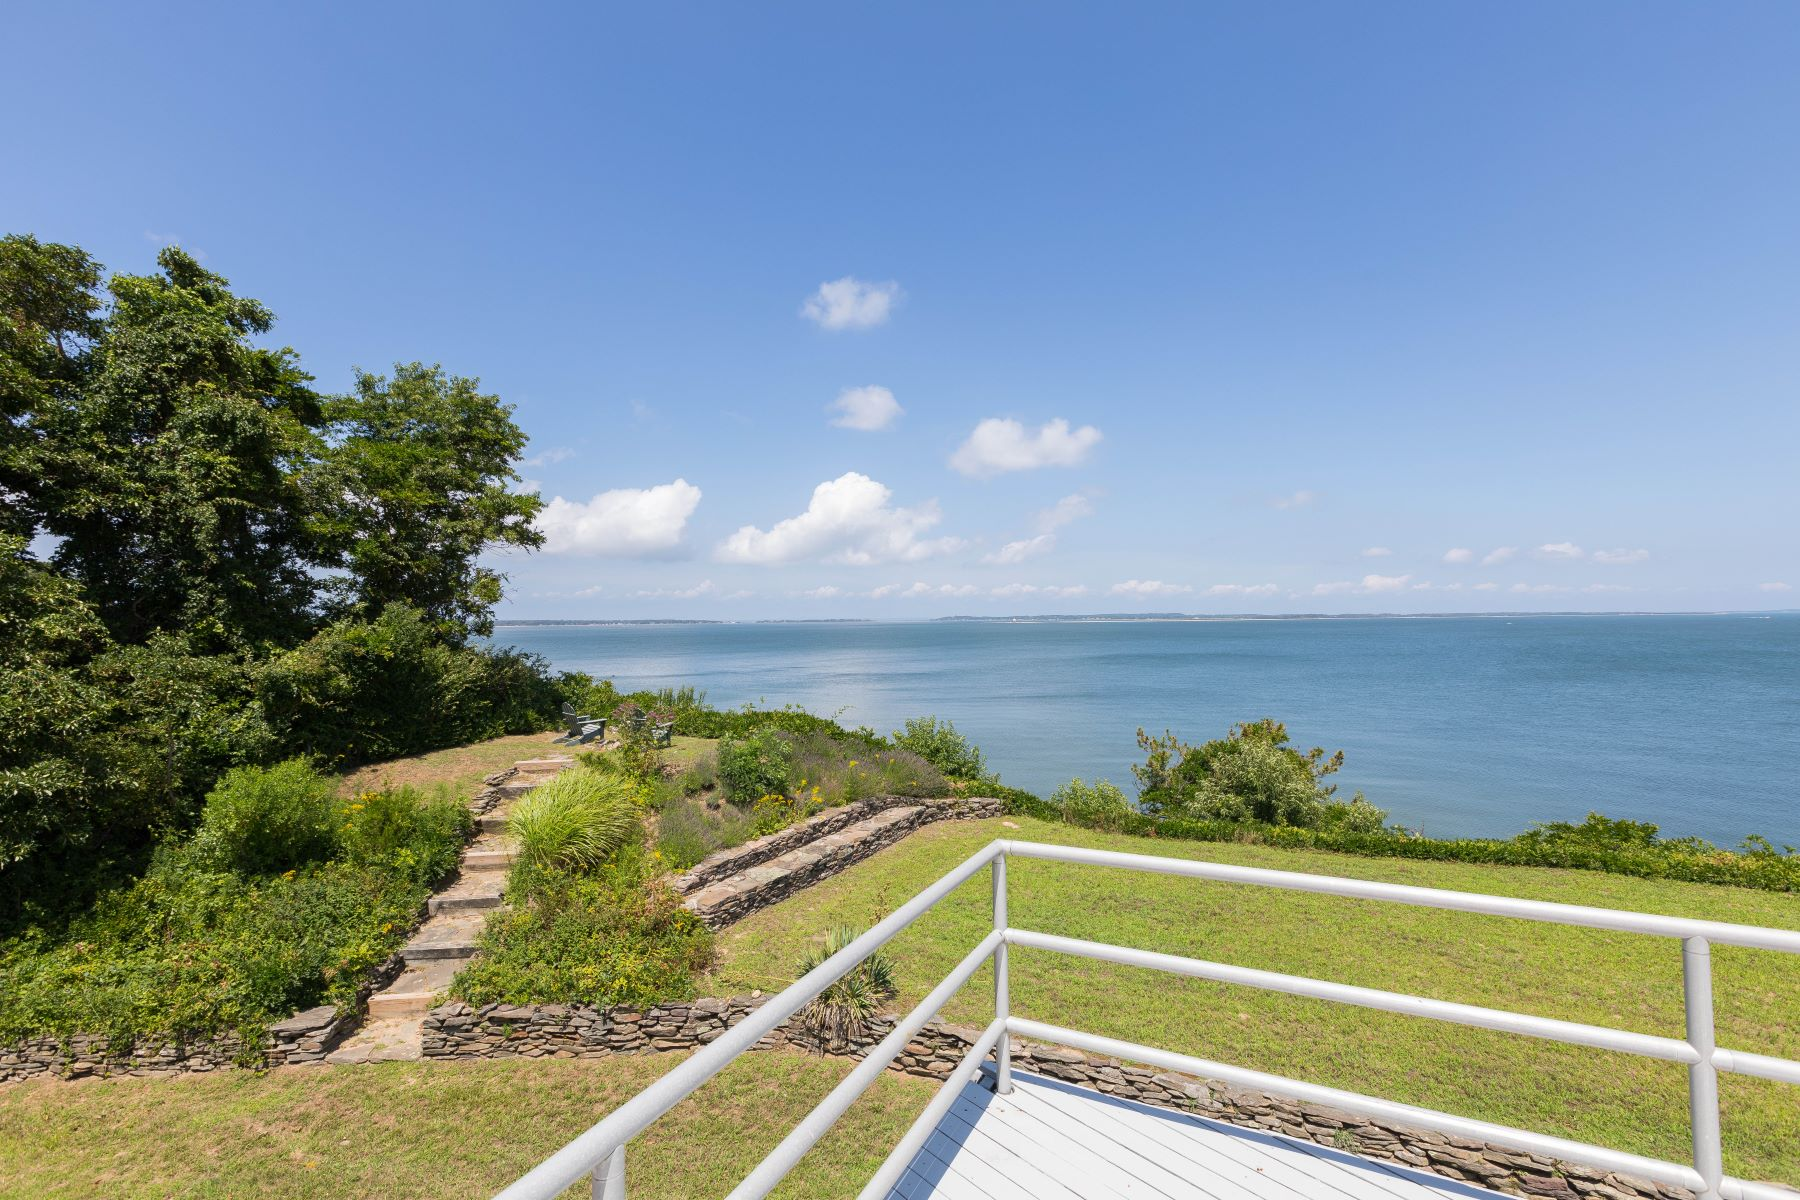 Single Family Home for Active at 85 Ram Island Dr , Shelter Island, NY 11964 85 Ram Island Dr Shelter Island, New York 11964 United States